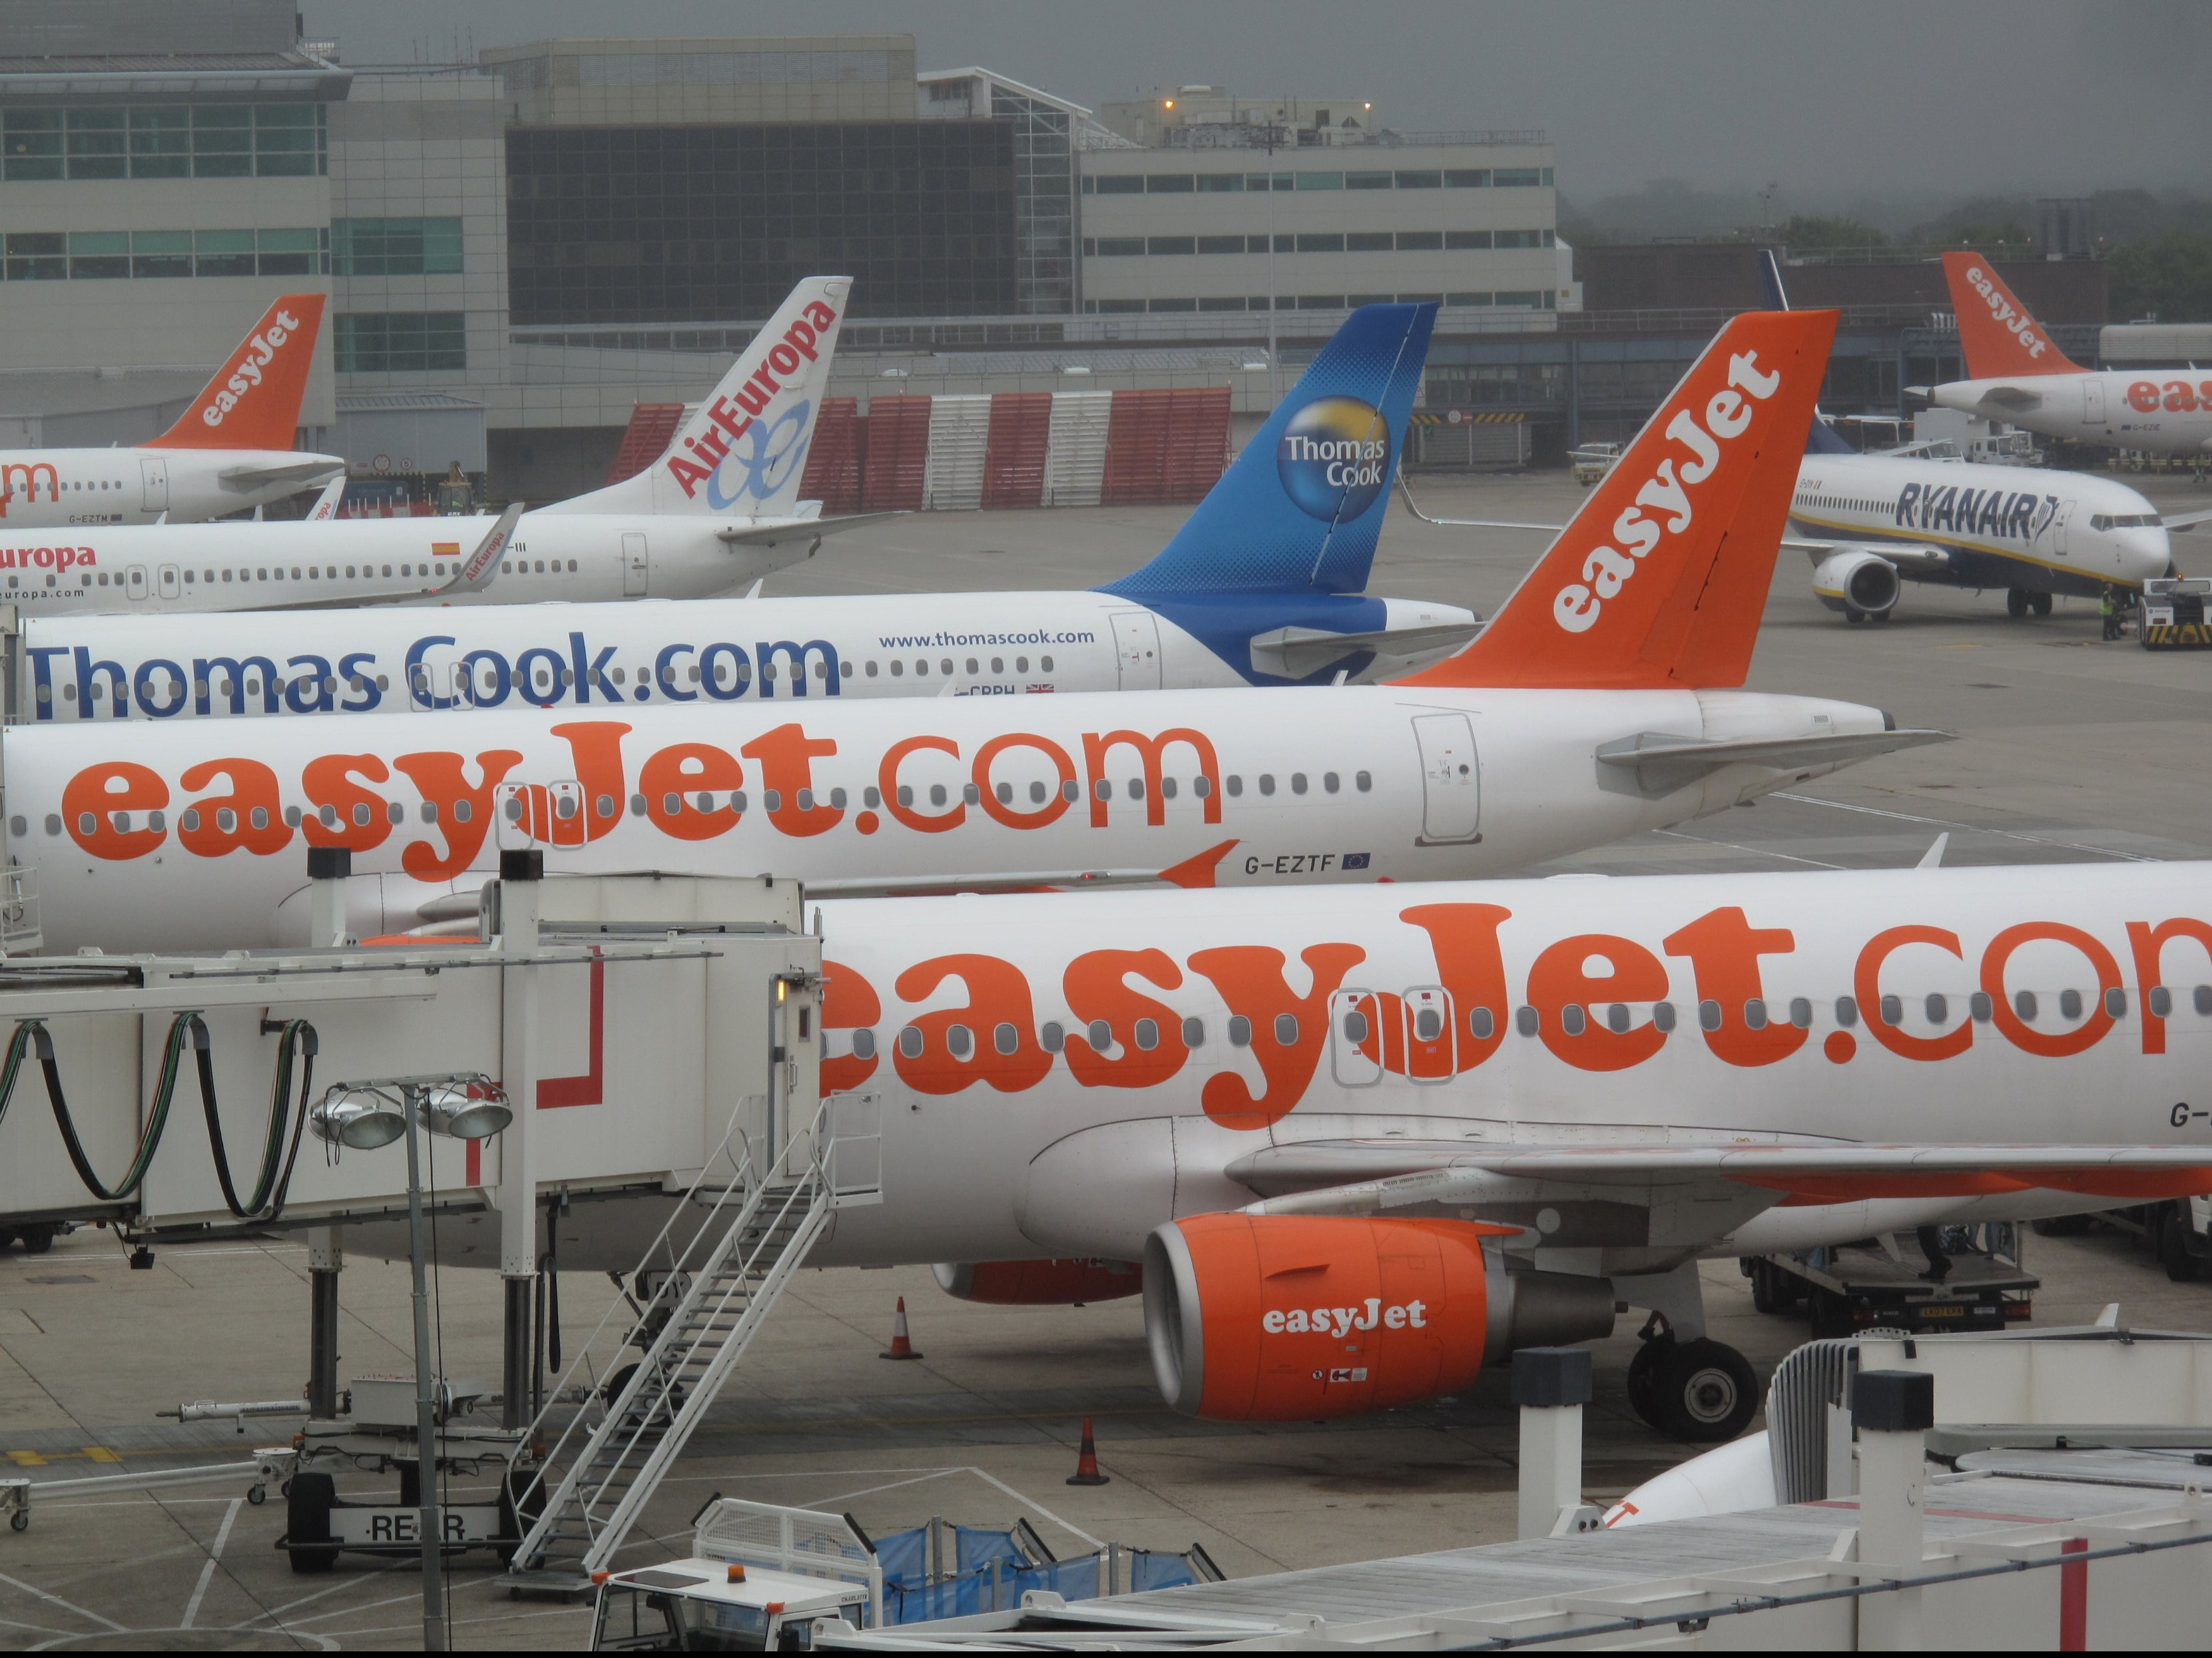 independent.co.uk - Simon Calder - Travel industry crisis as airports expect as few as 20% of normal passenger numbers